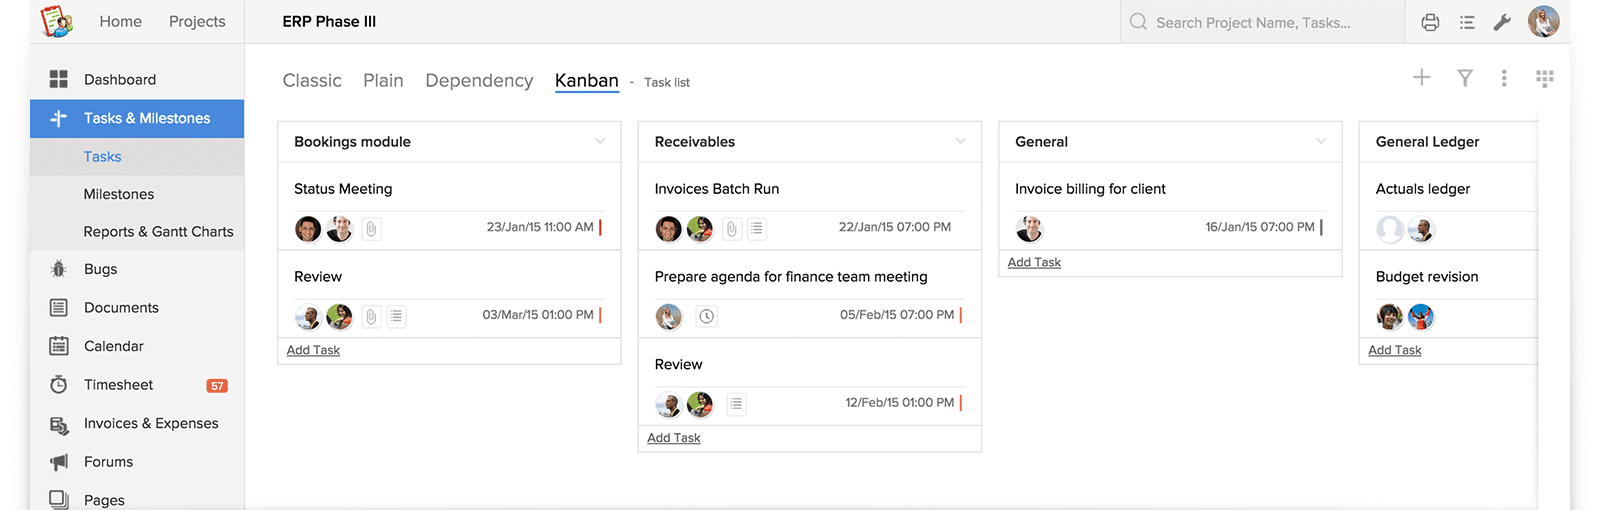 Keep All in the Know with Kanban